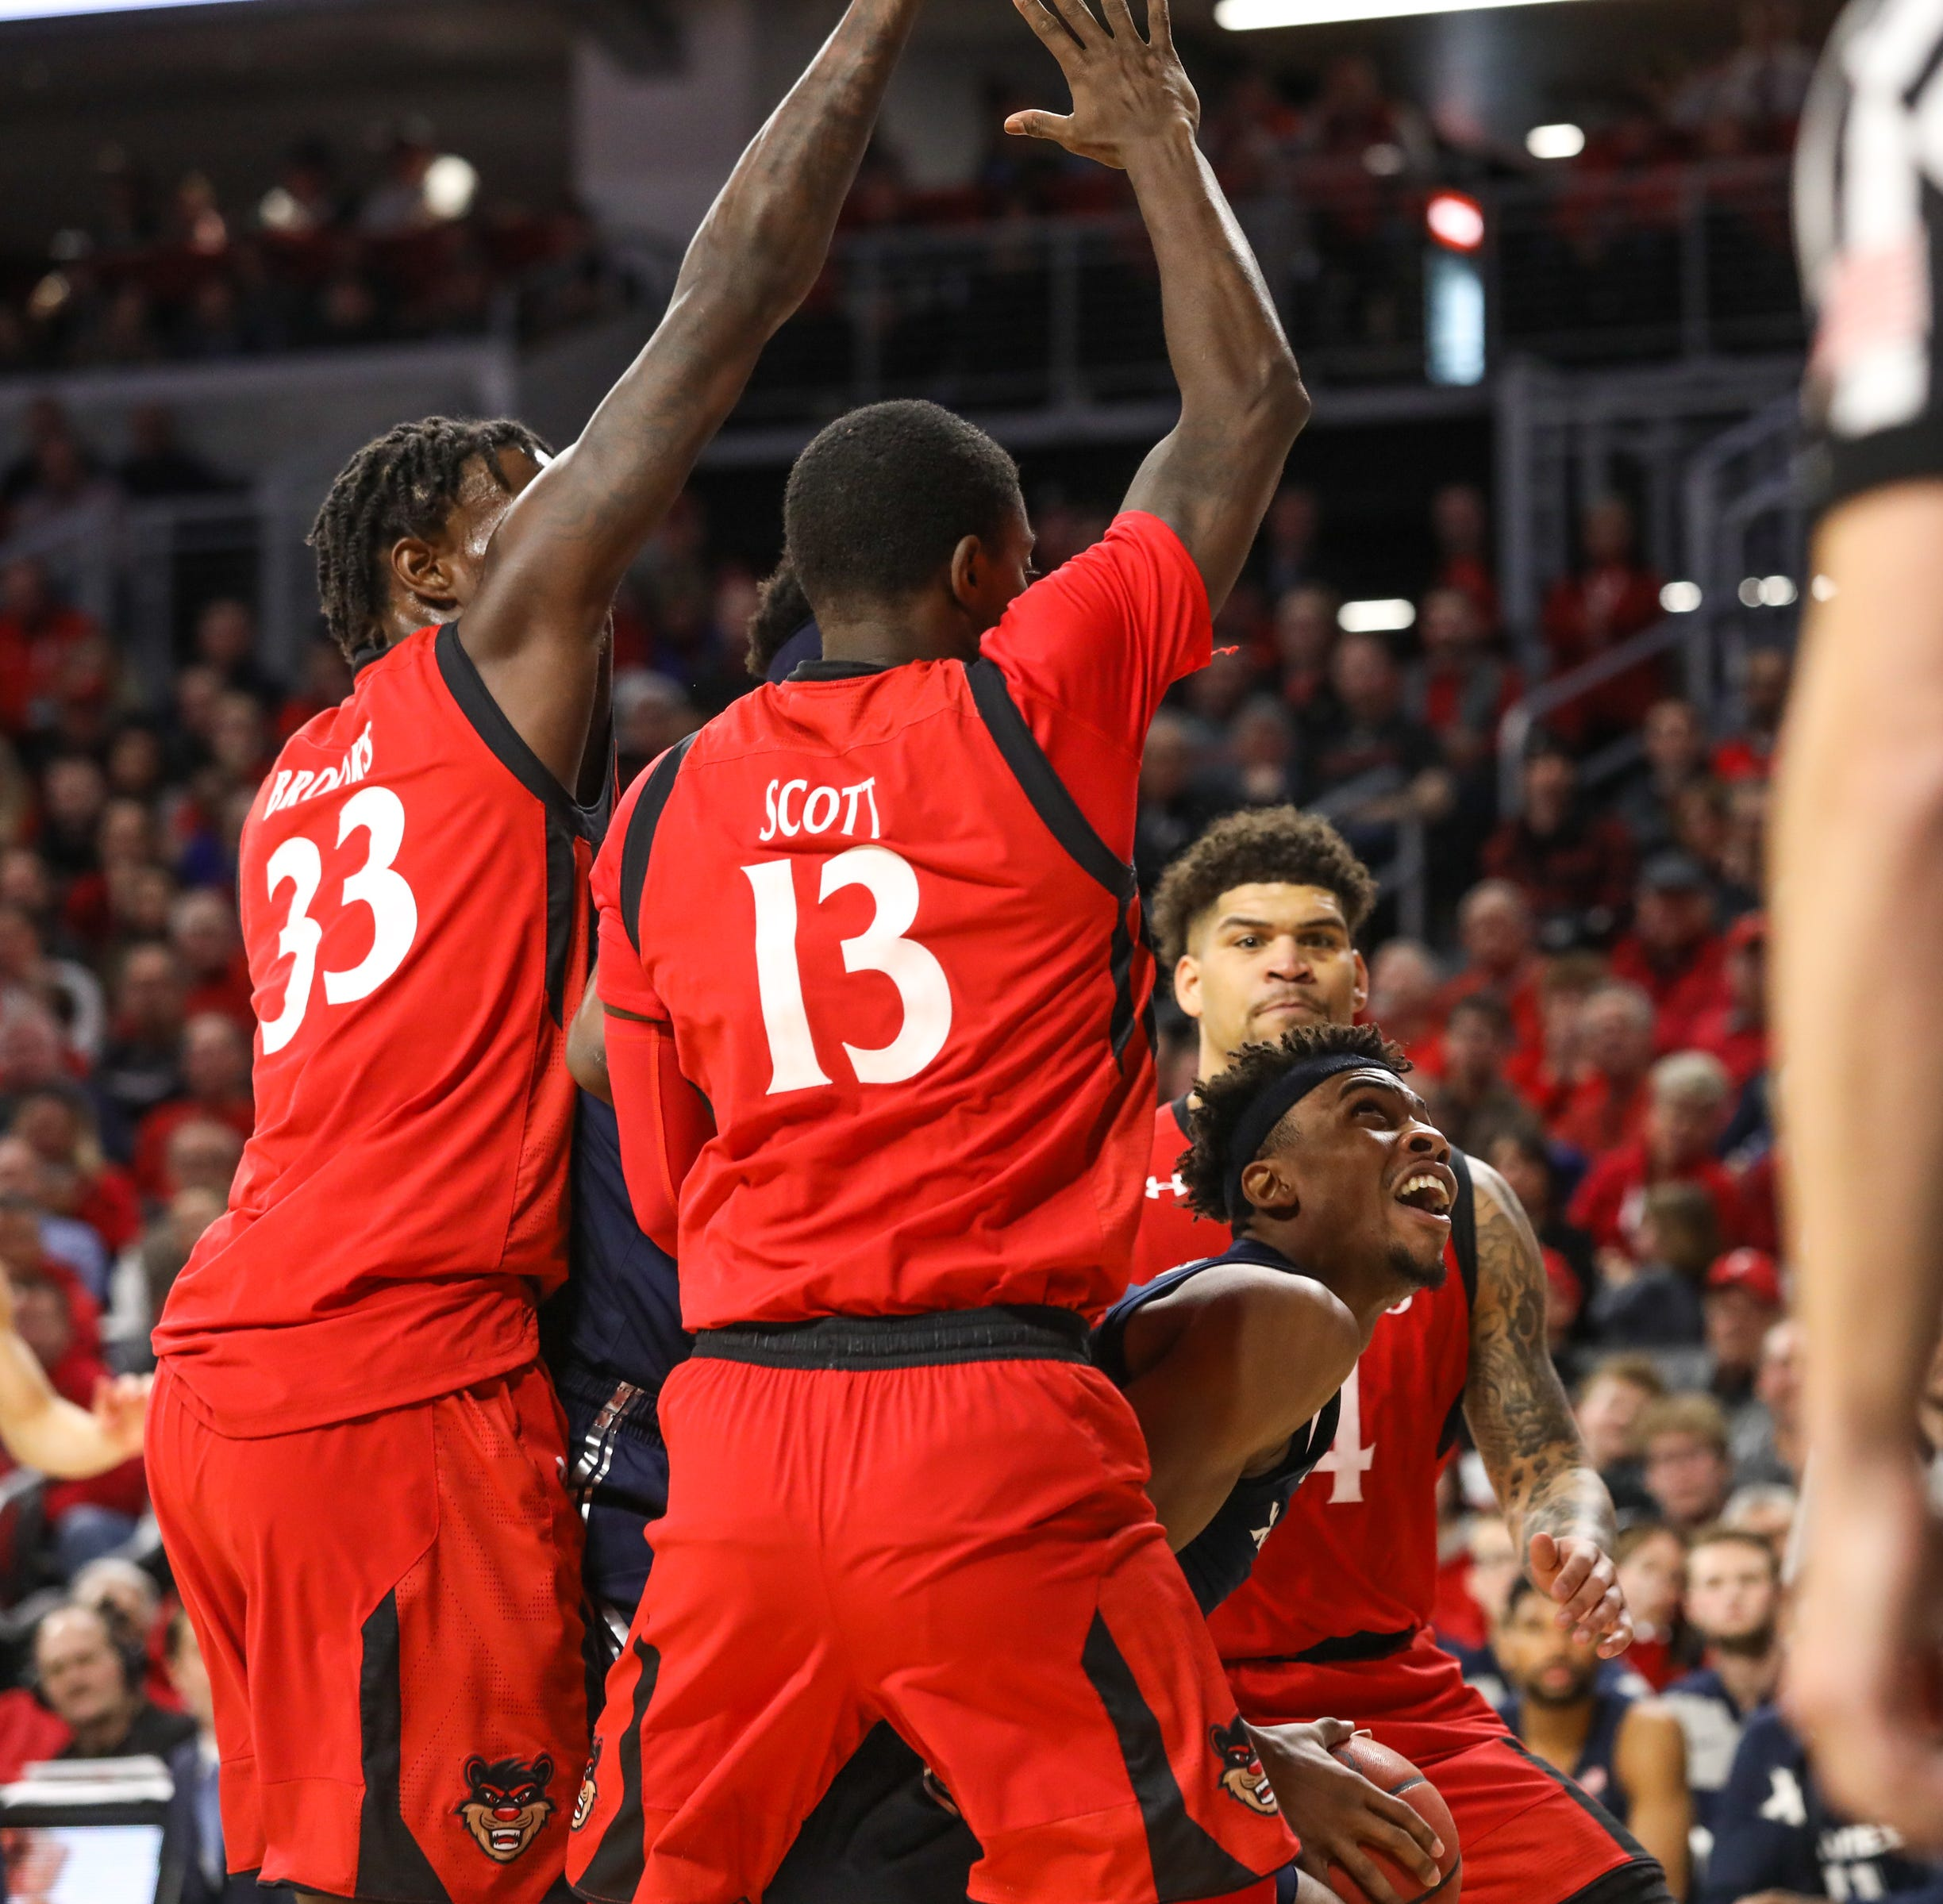 Daugherty: UC defense was dominant in Crosstown Shootout